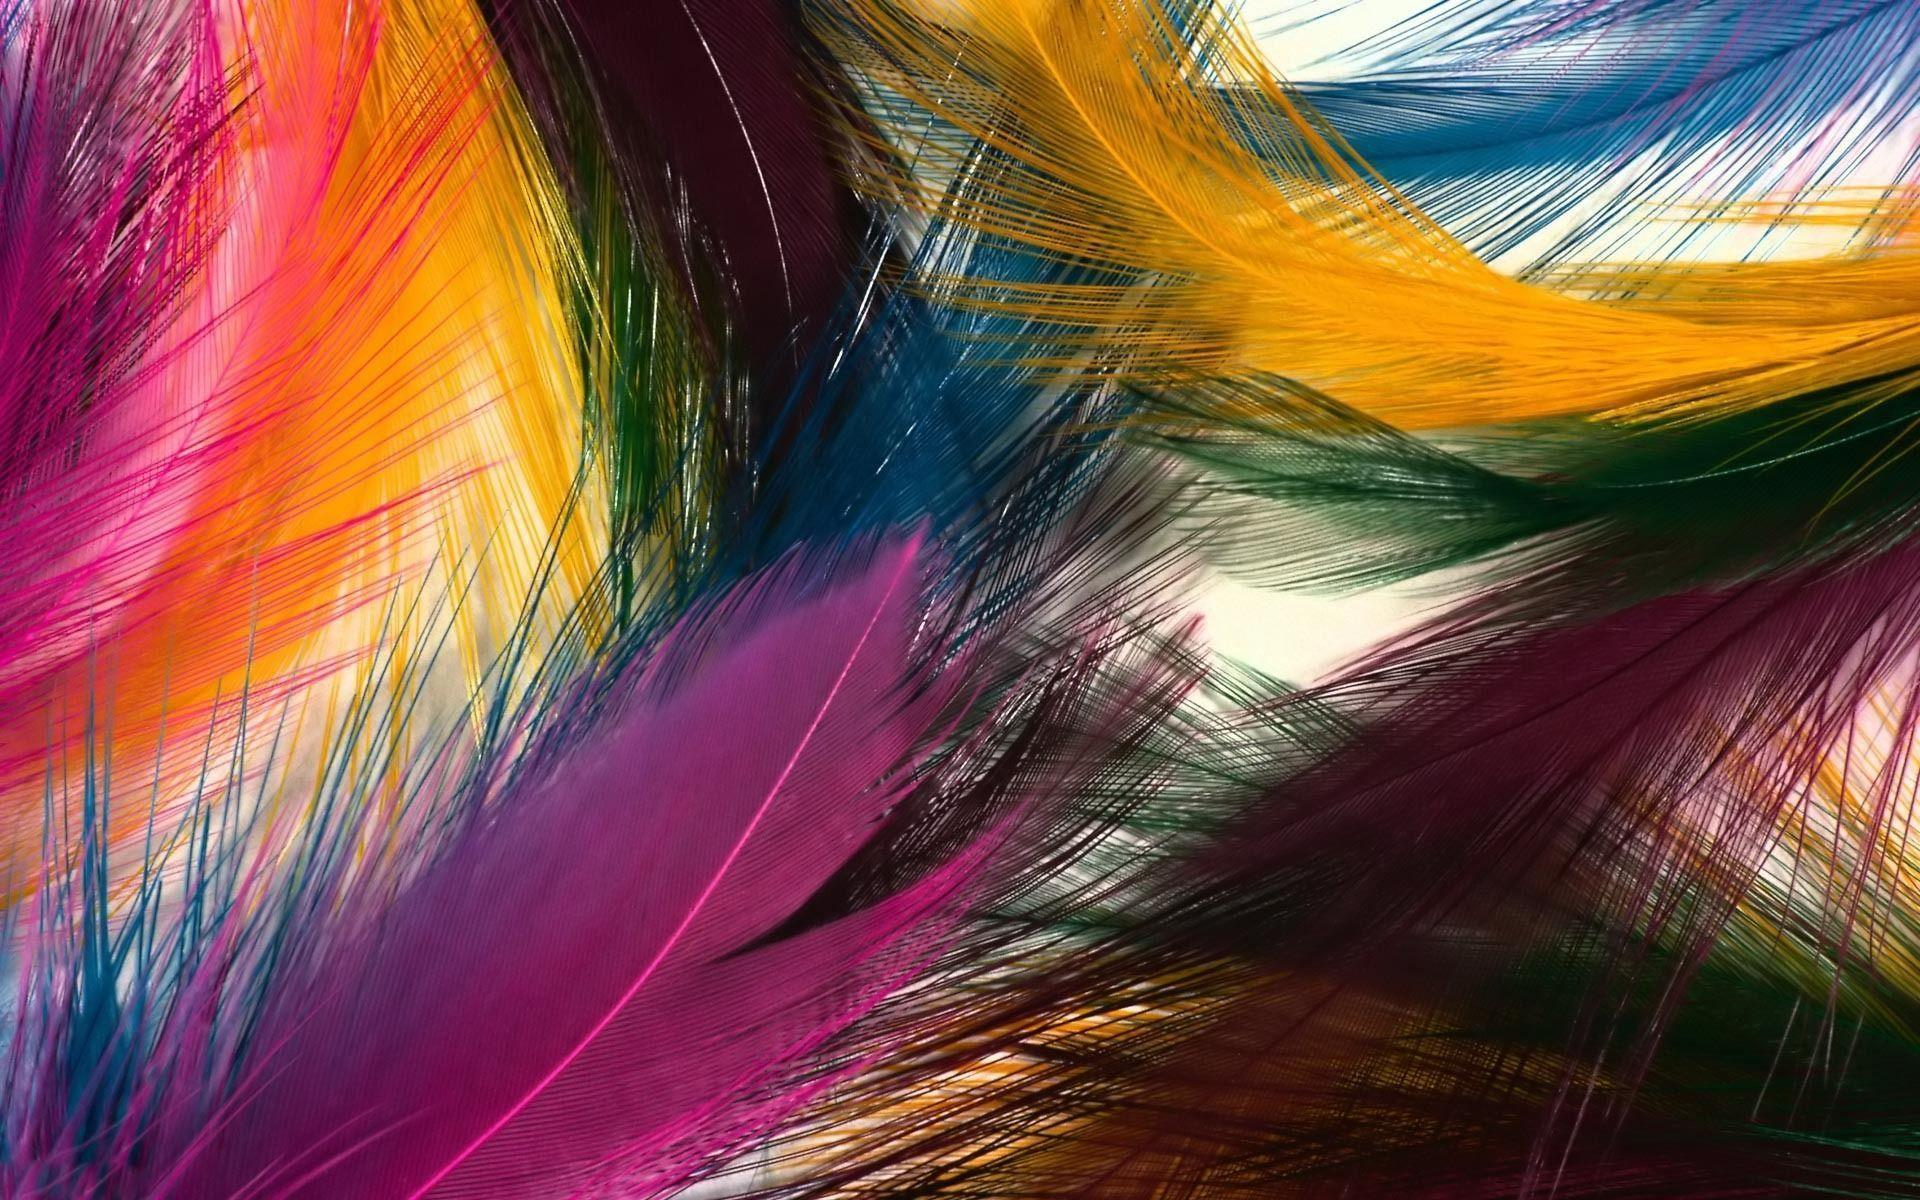 Wallpapers Of Peacock Feathers HD 2016 - Wallpaper CaveFeather Background Twitter